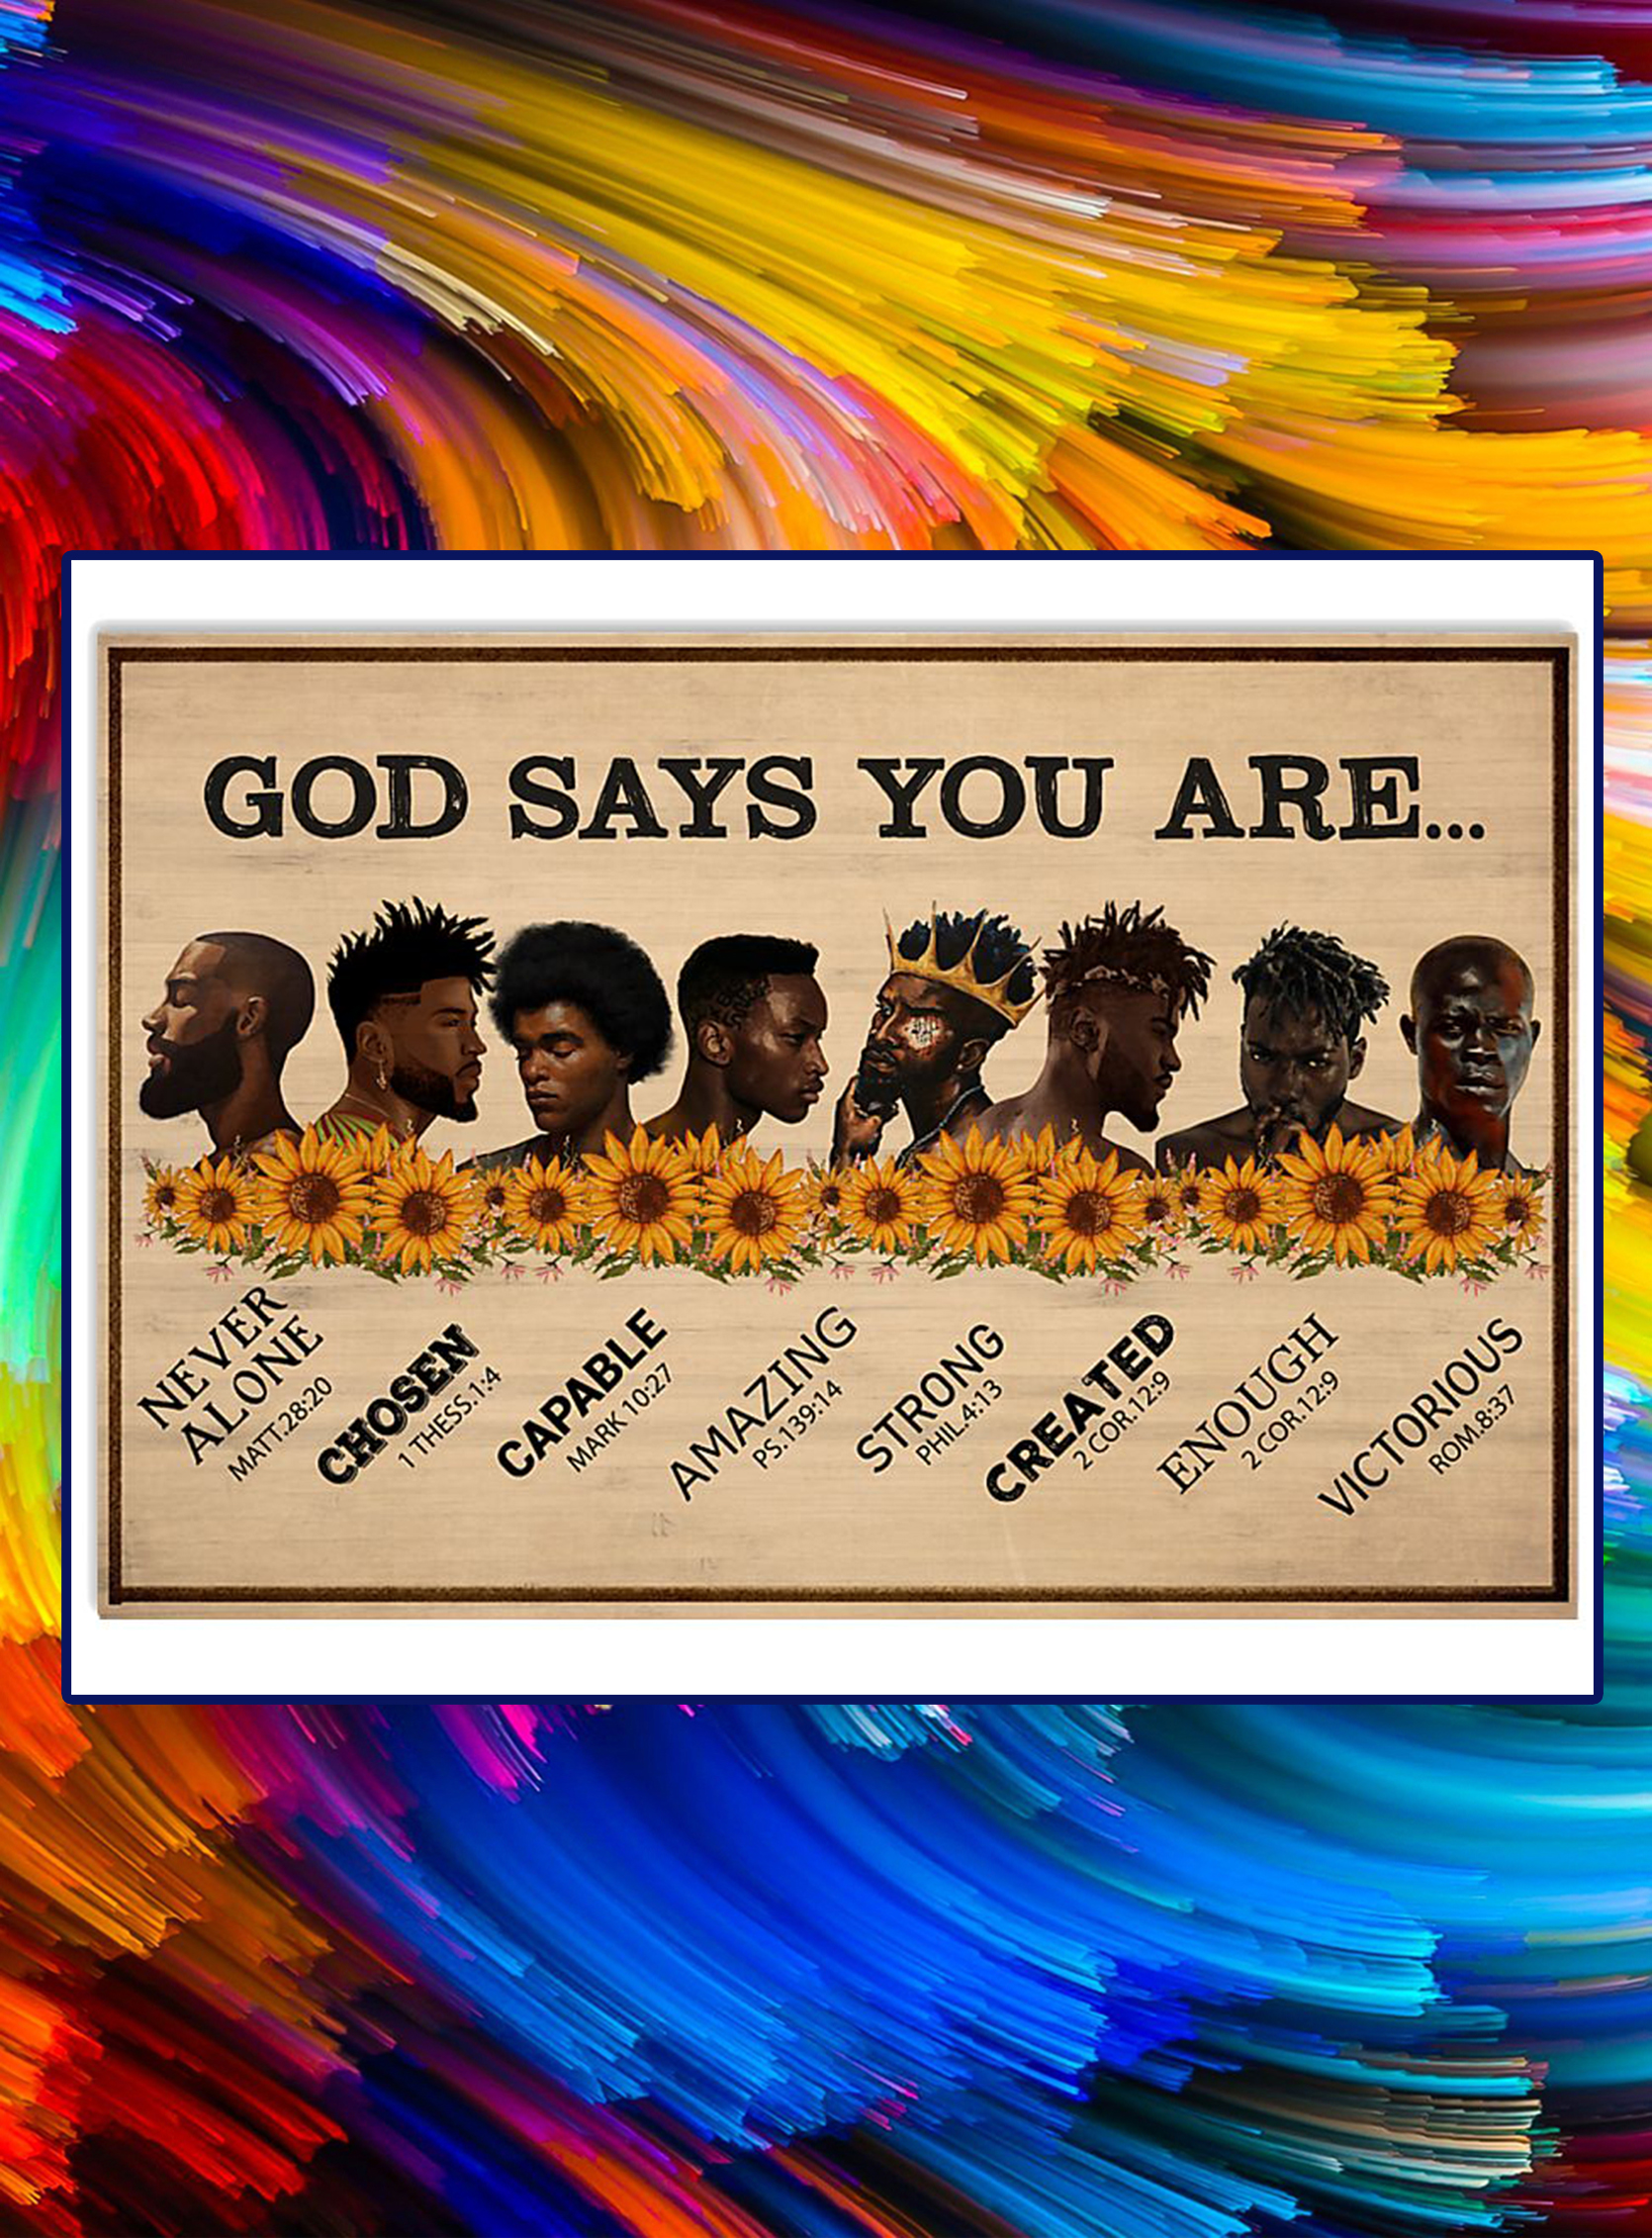 Black men God says you are poster - A2